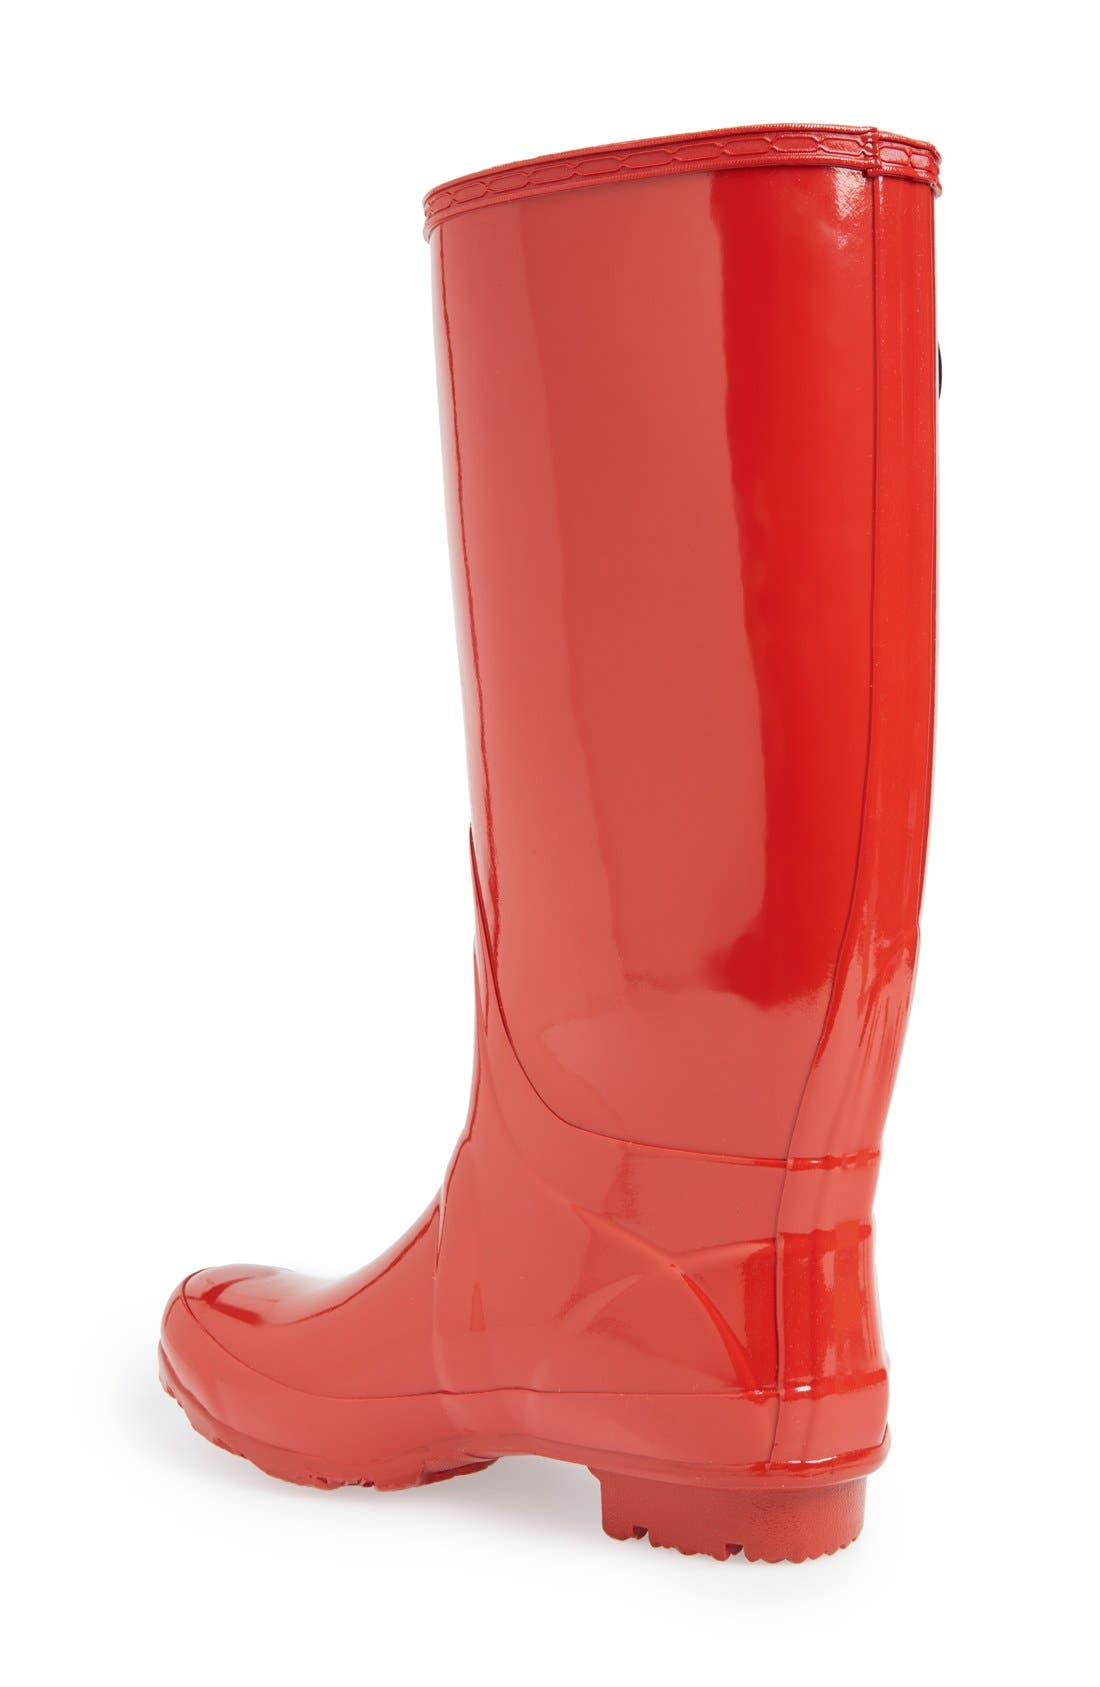 'Huntress' Boot,                             Alternate thumbnail 4, color,                             Red